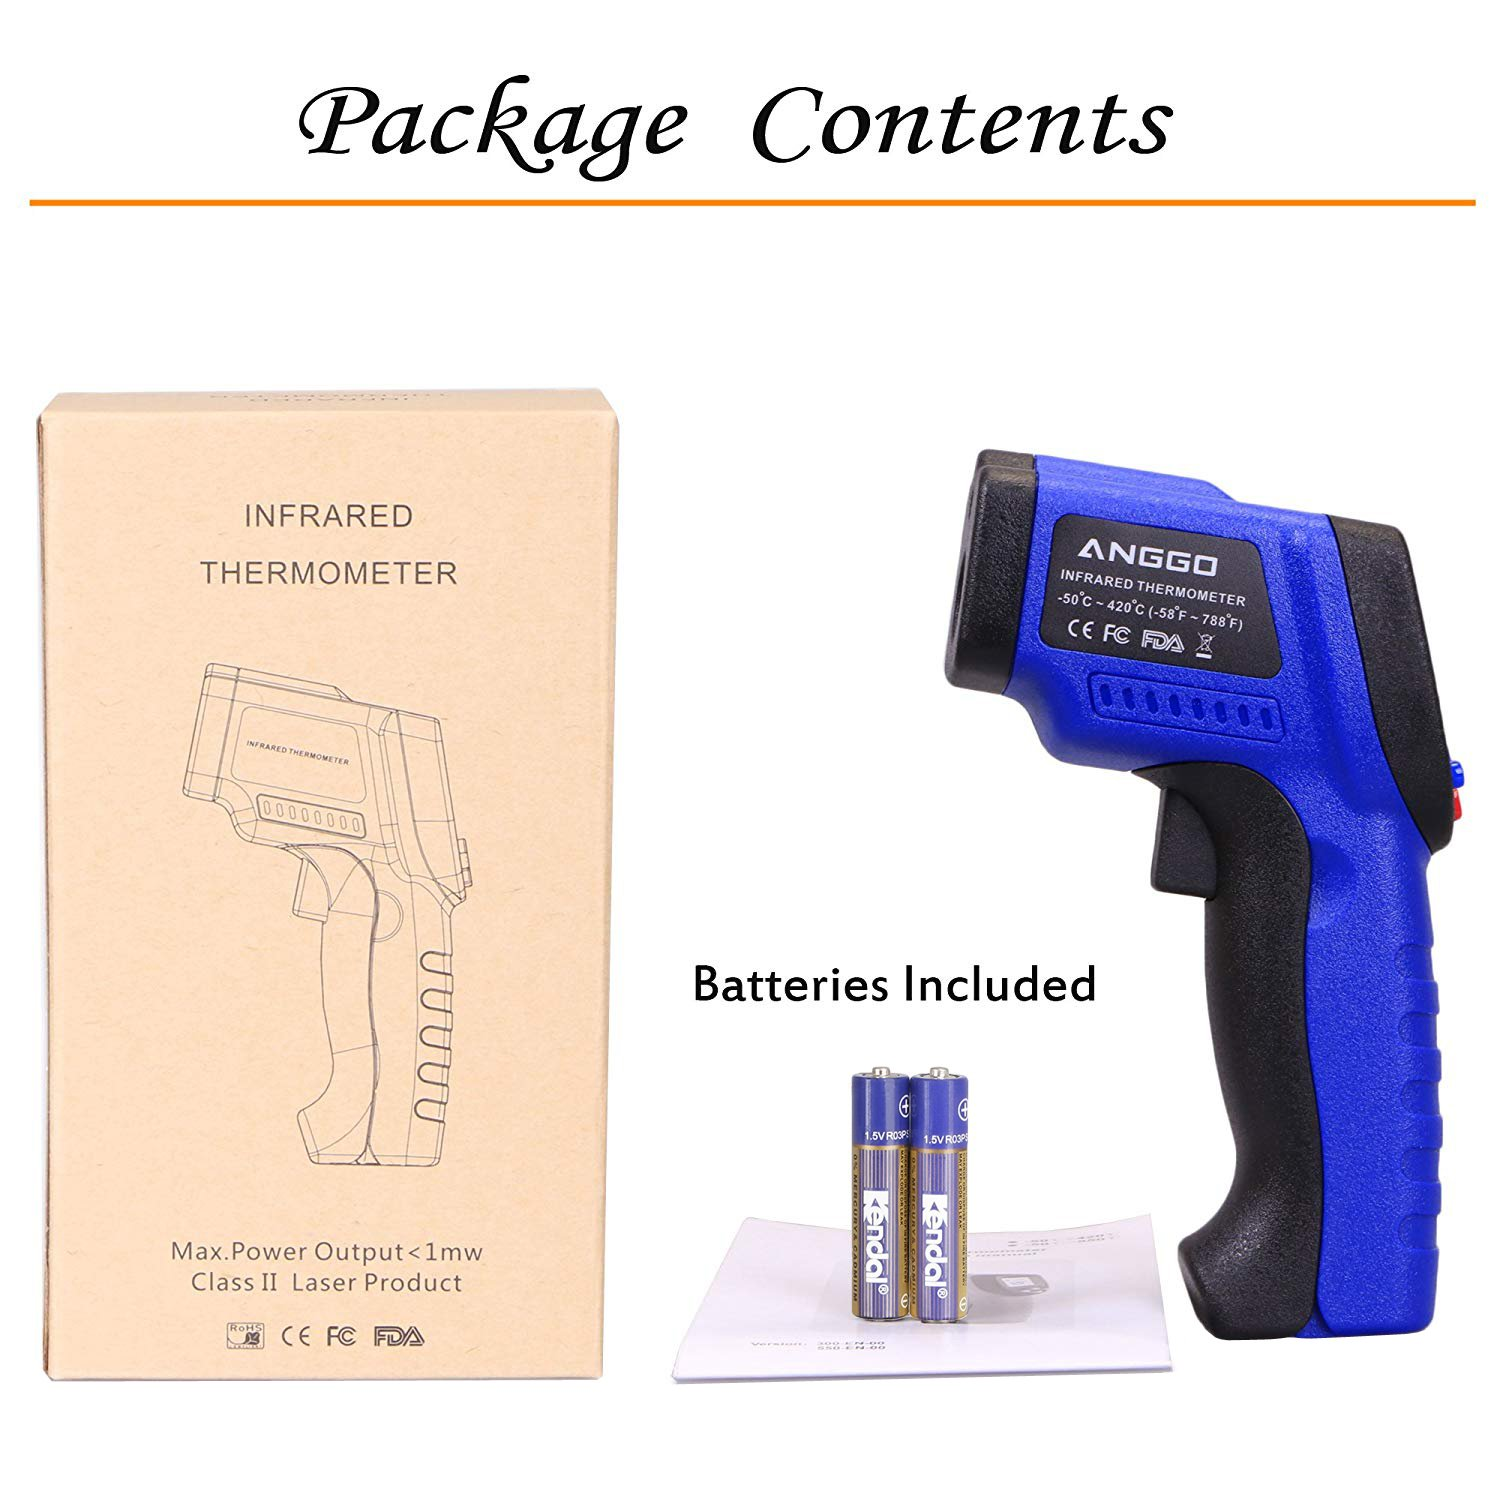 ANGGO Non-contact Digital Infrared Thermometer Temperature Gun with EMS Adjustable (-58 °F to 788°F) by ANGGO (Image #7)